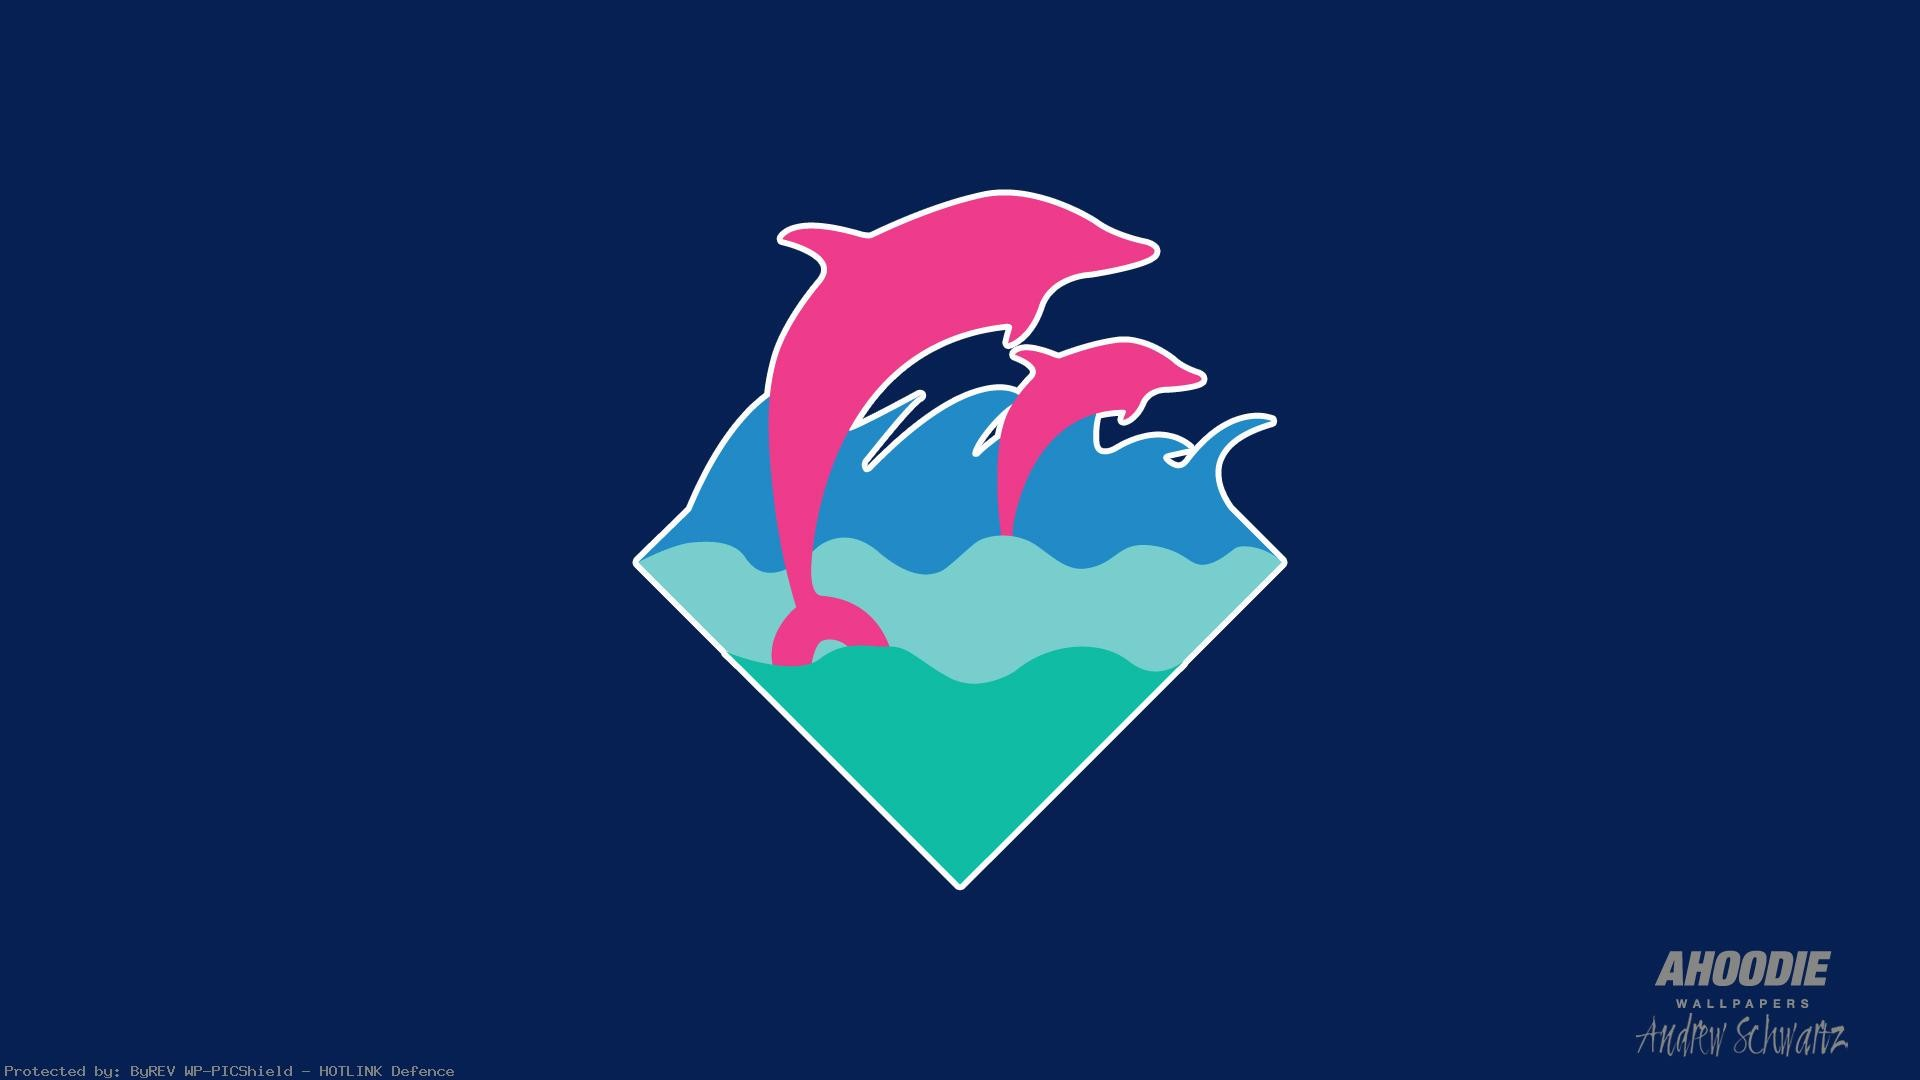 Animated Dolphin Screensavers Wallpaper (46+ images)Pink Dolphin Wallpaper